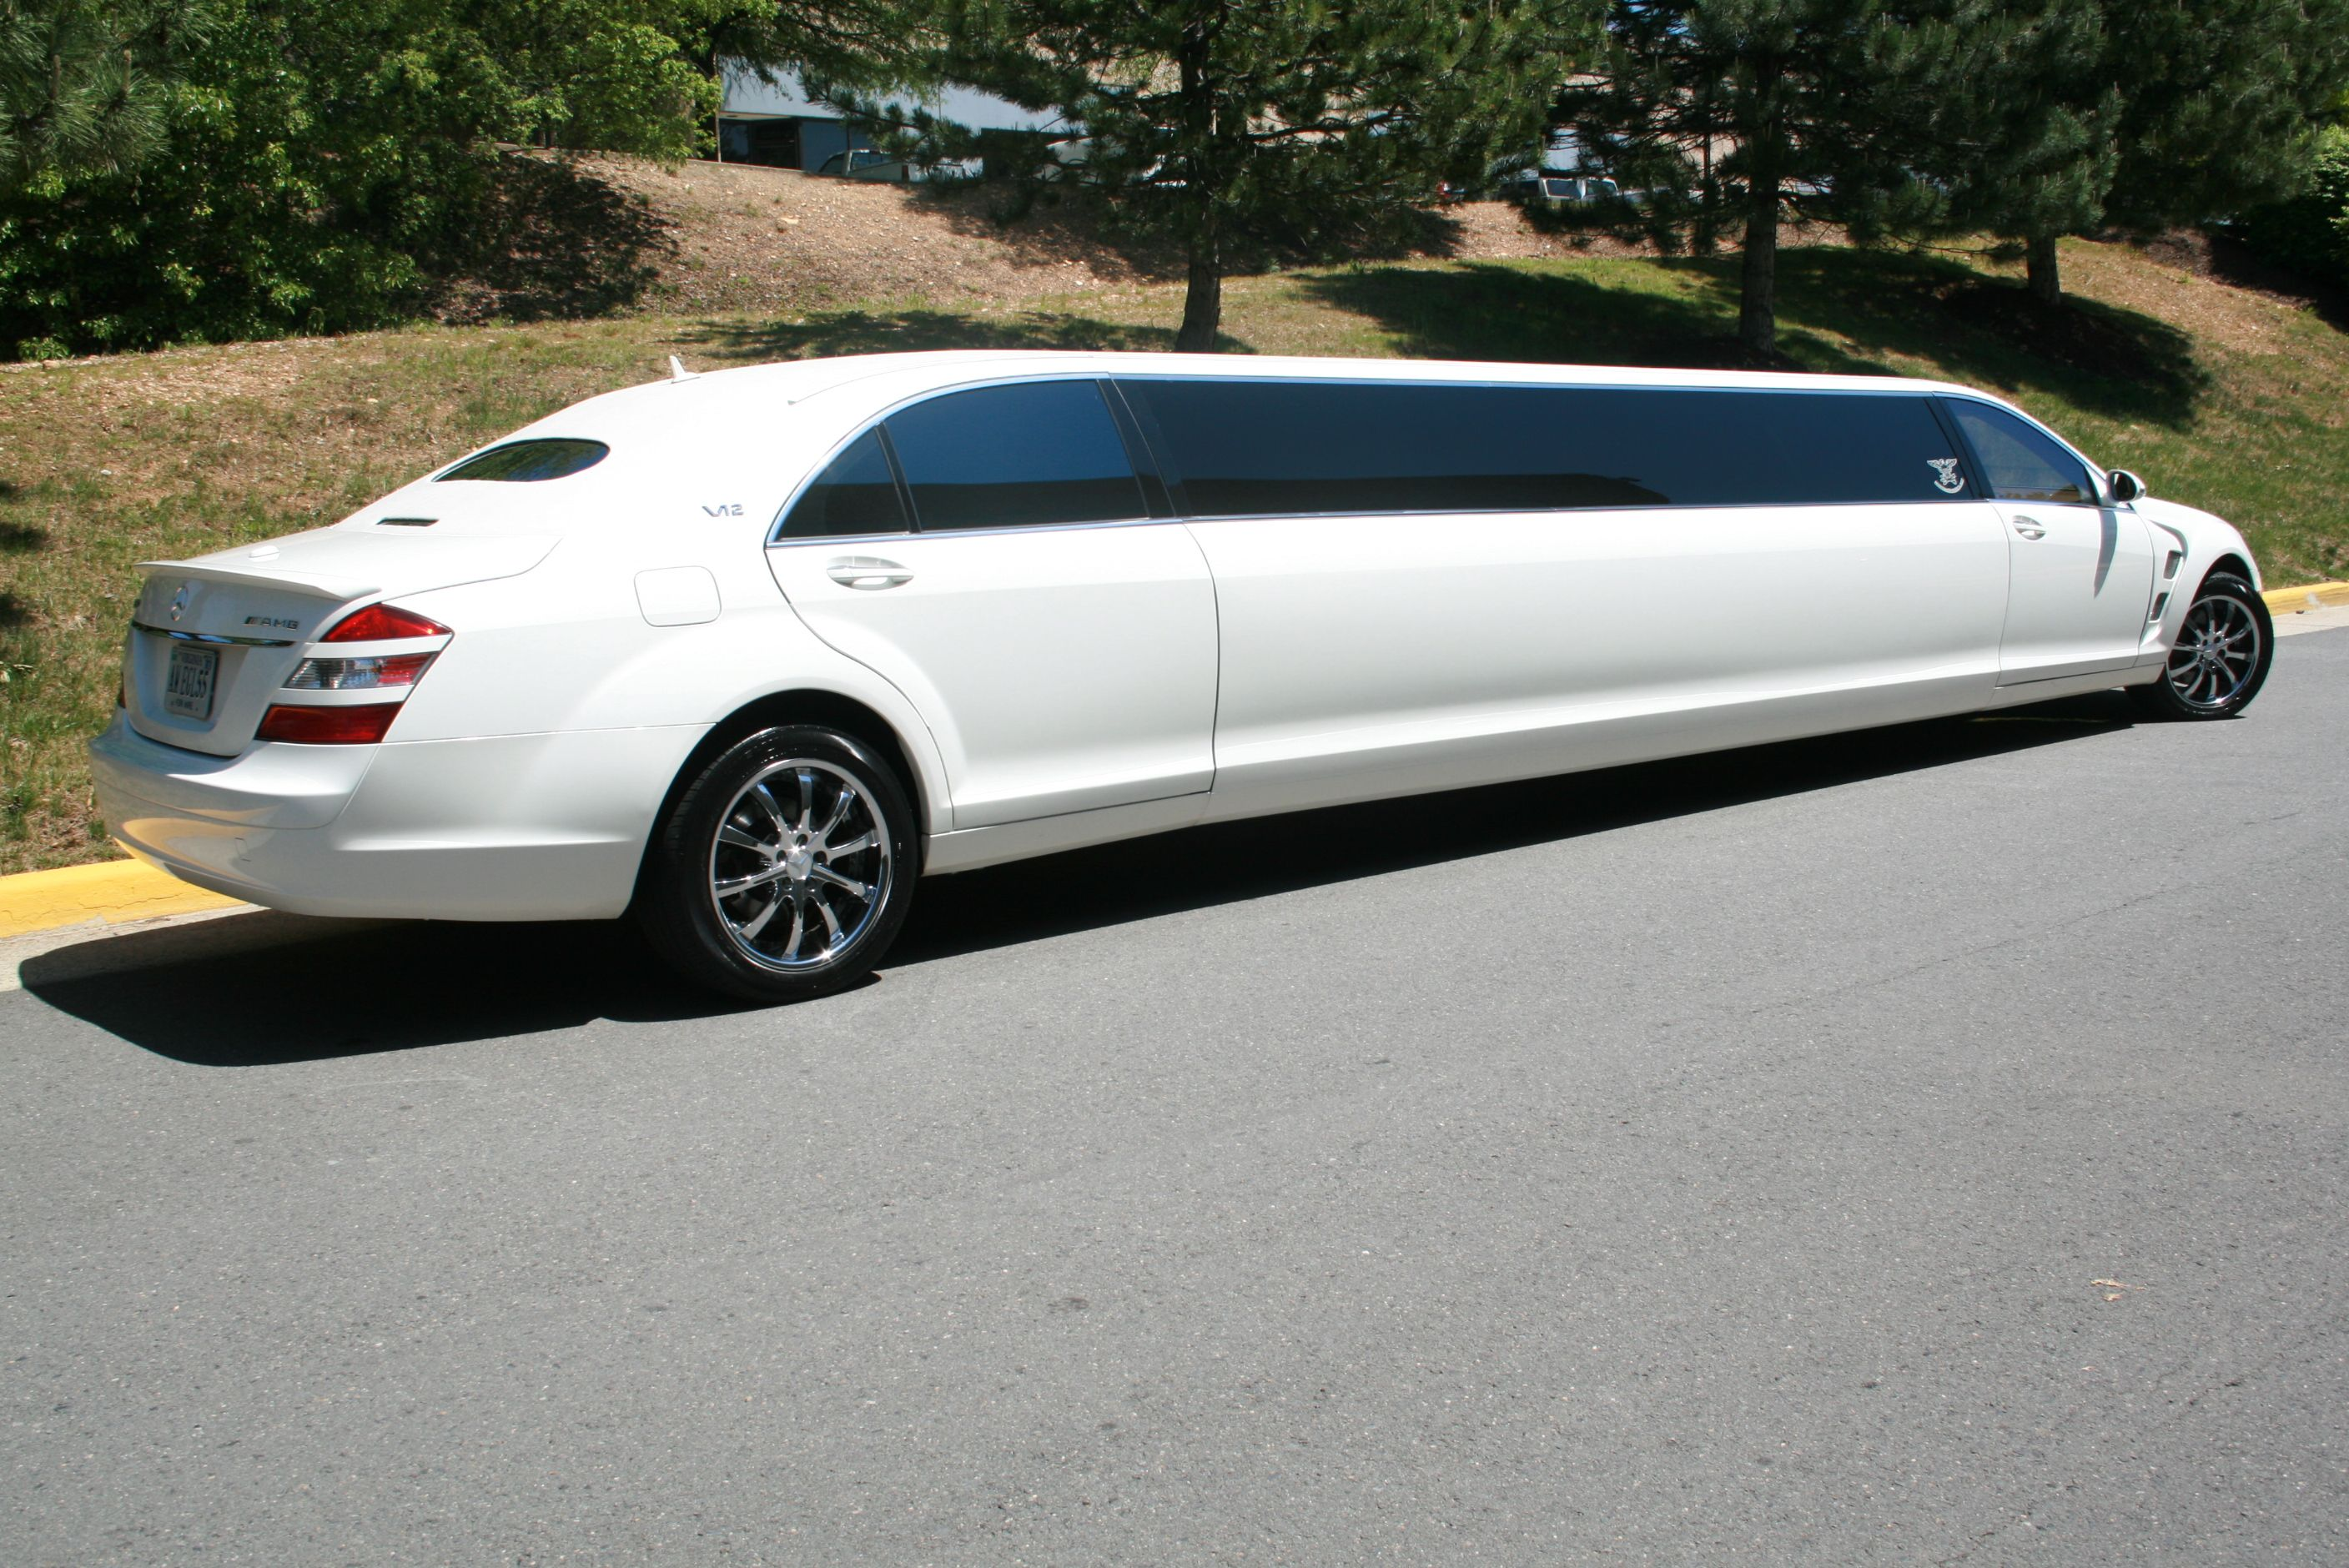 Mercedes benz s600 stretch limousine mercedes benz s600 for Mercedes benz limo